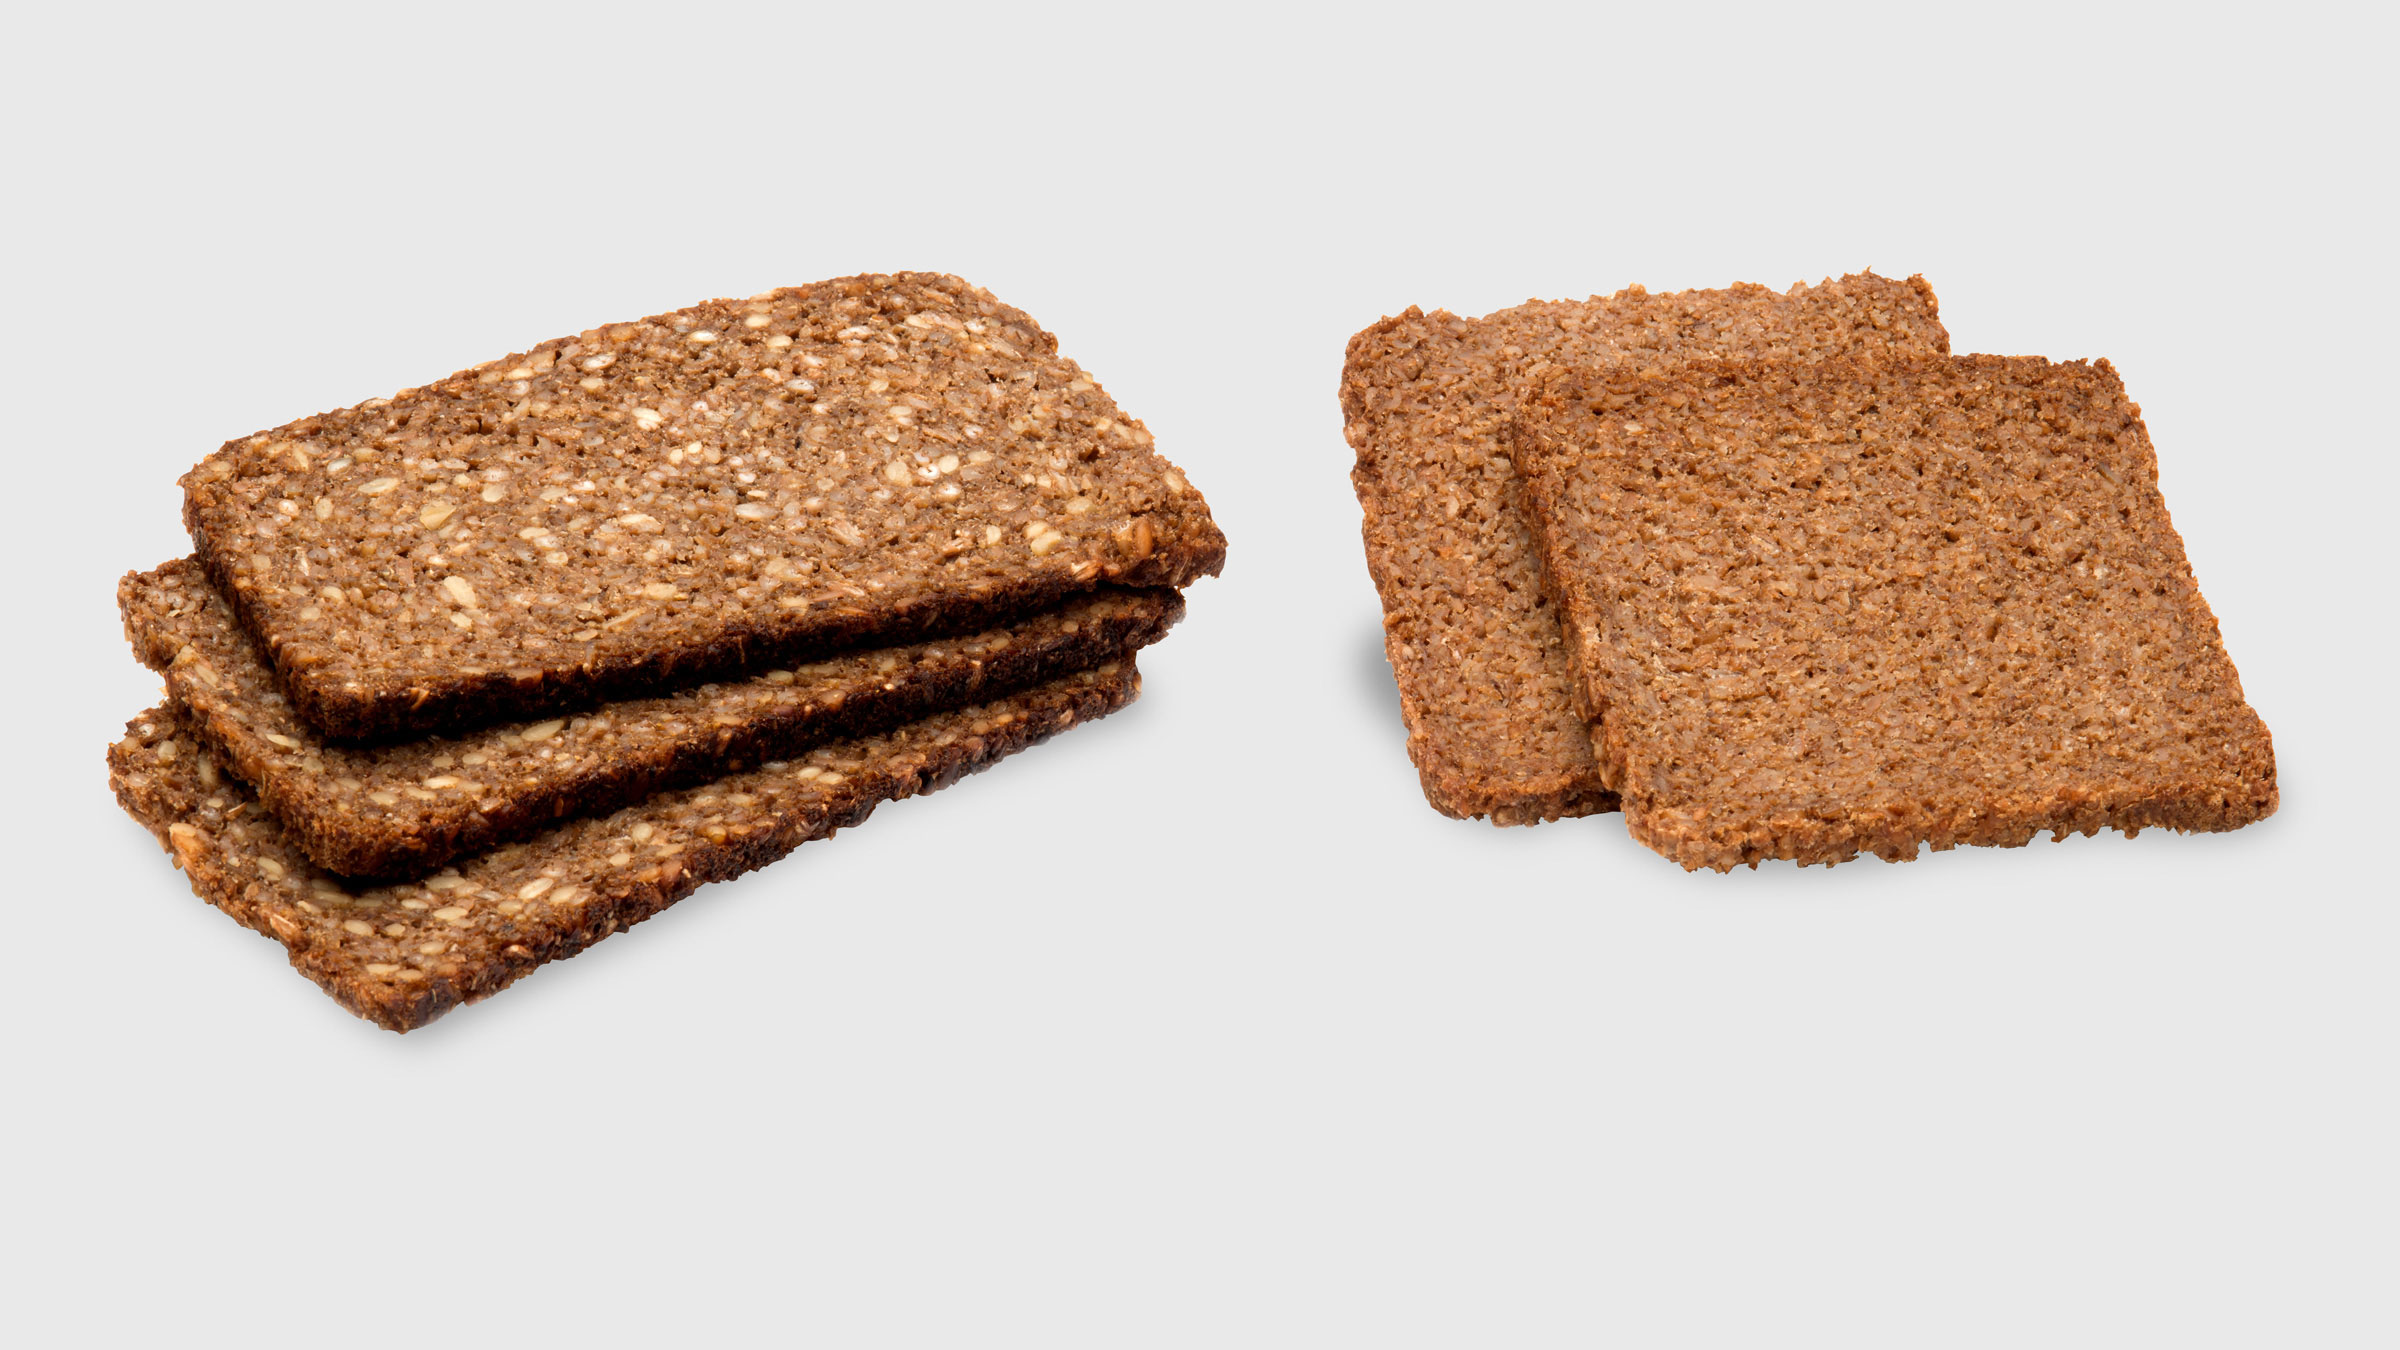 Rye bread slices